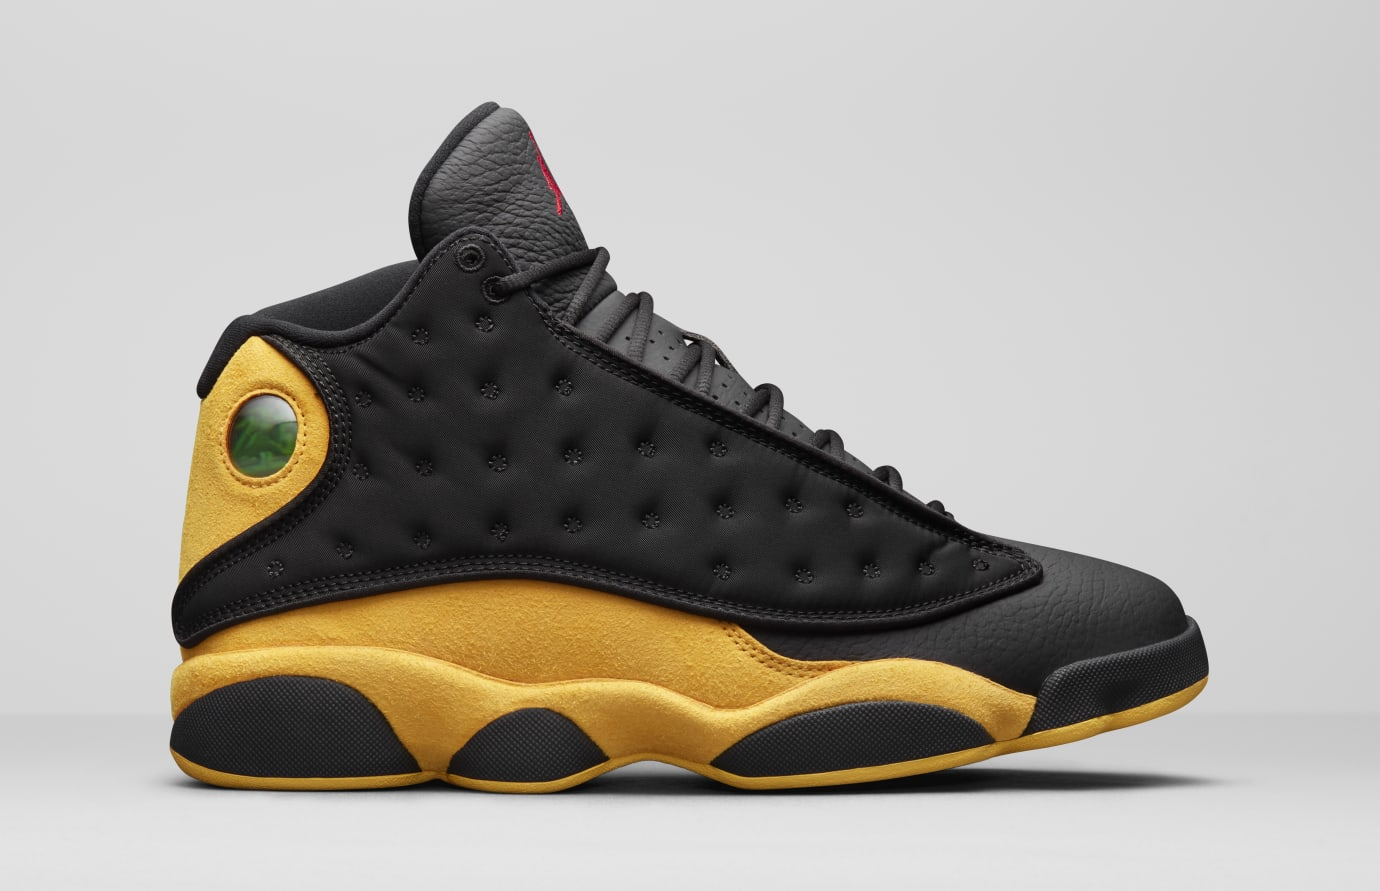 Air Jordan 13 Carmelo Anthony Back to School